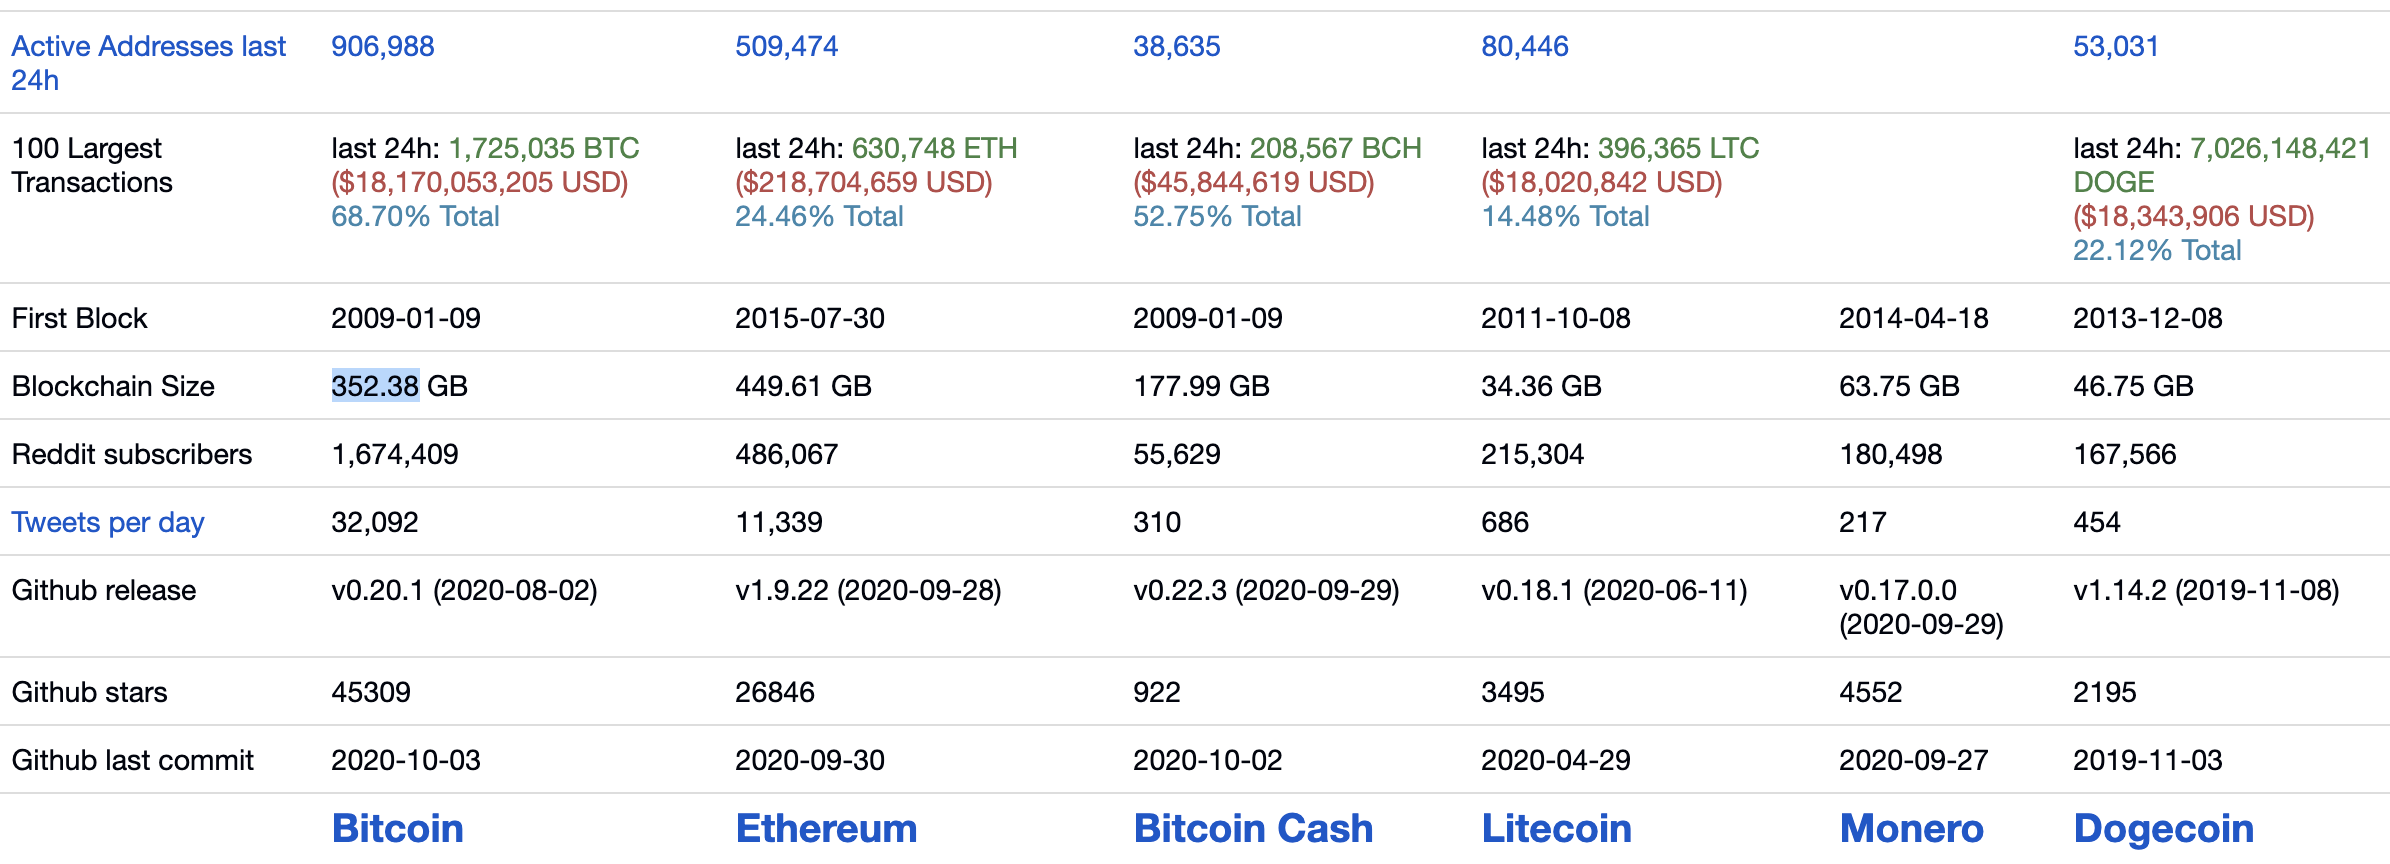 Bitcoin and ethereum blockchain size, Sep 2020